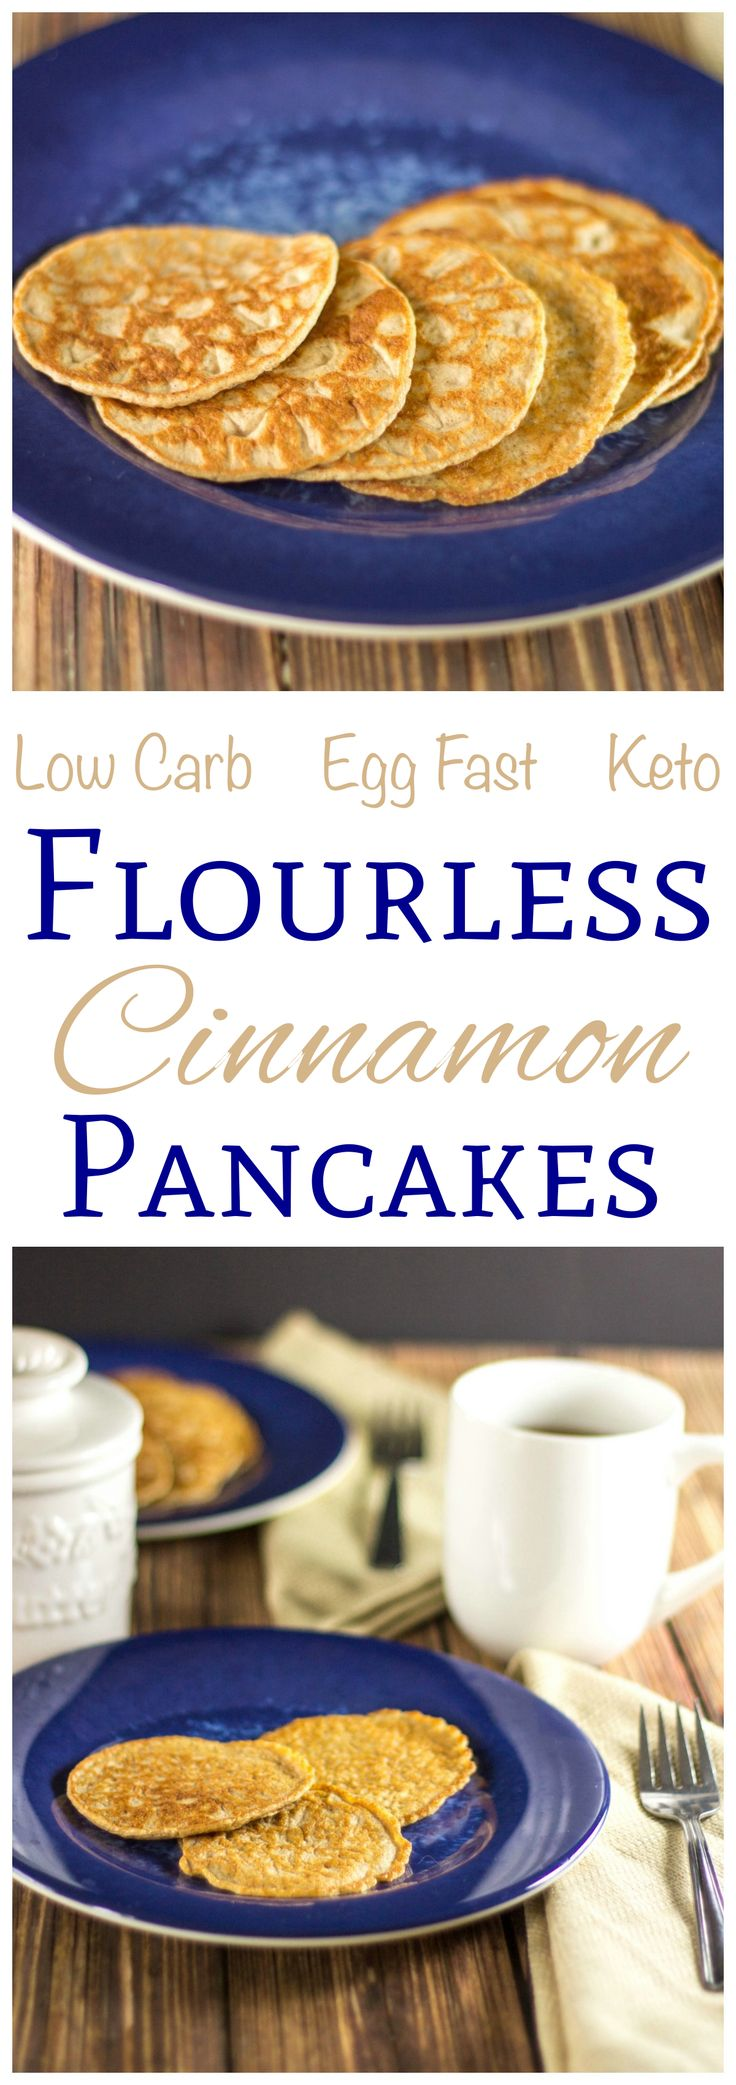 These flourless cinnamon Egg Fast pancakes are super low carb. This recipe is suitable for gluten free, keto, Banting, and other low carb high fat diets.